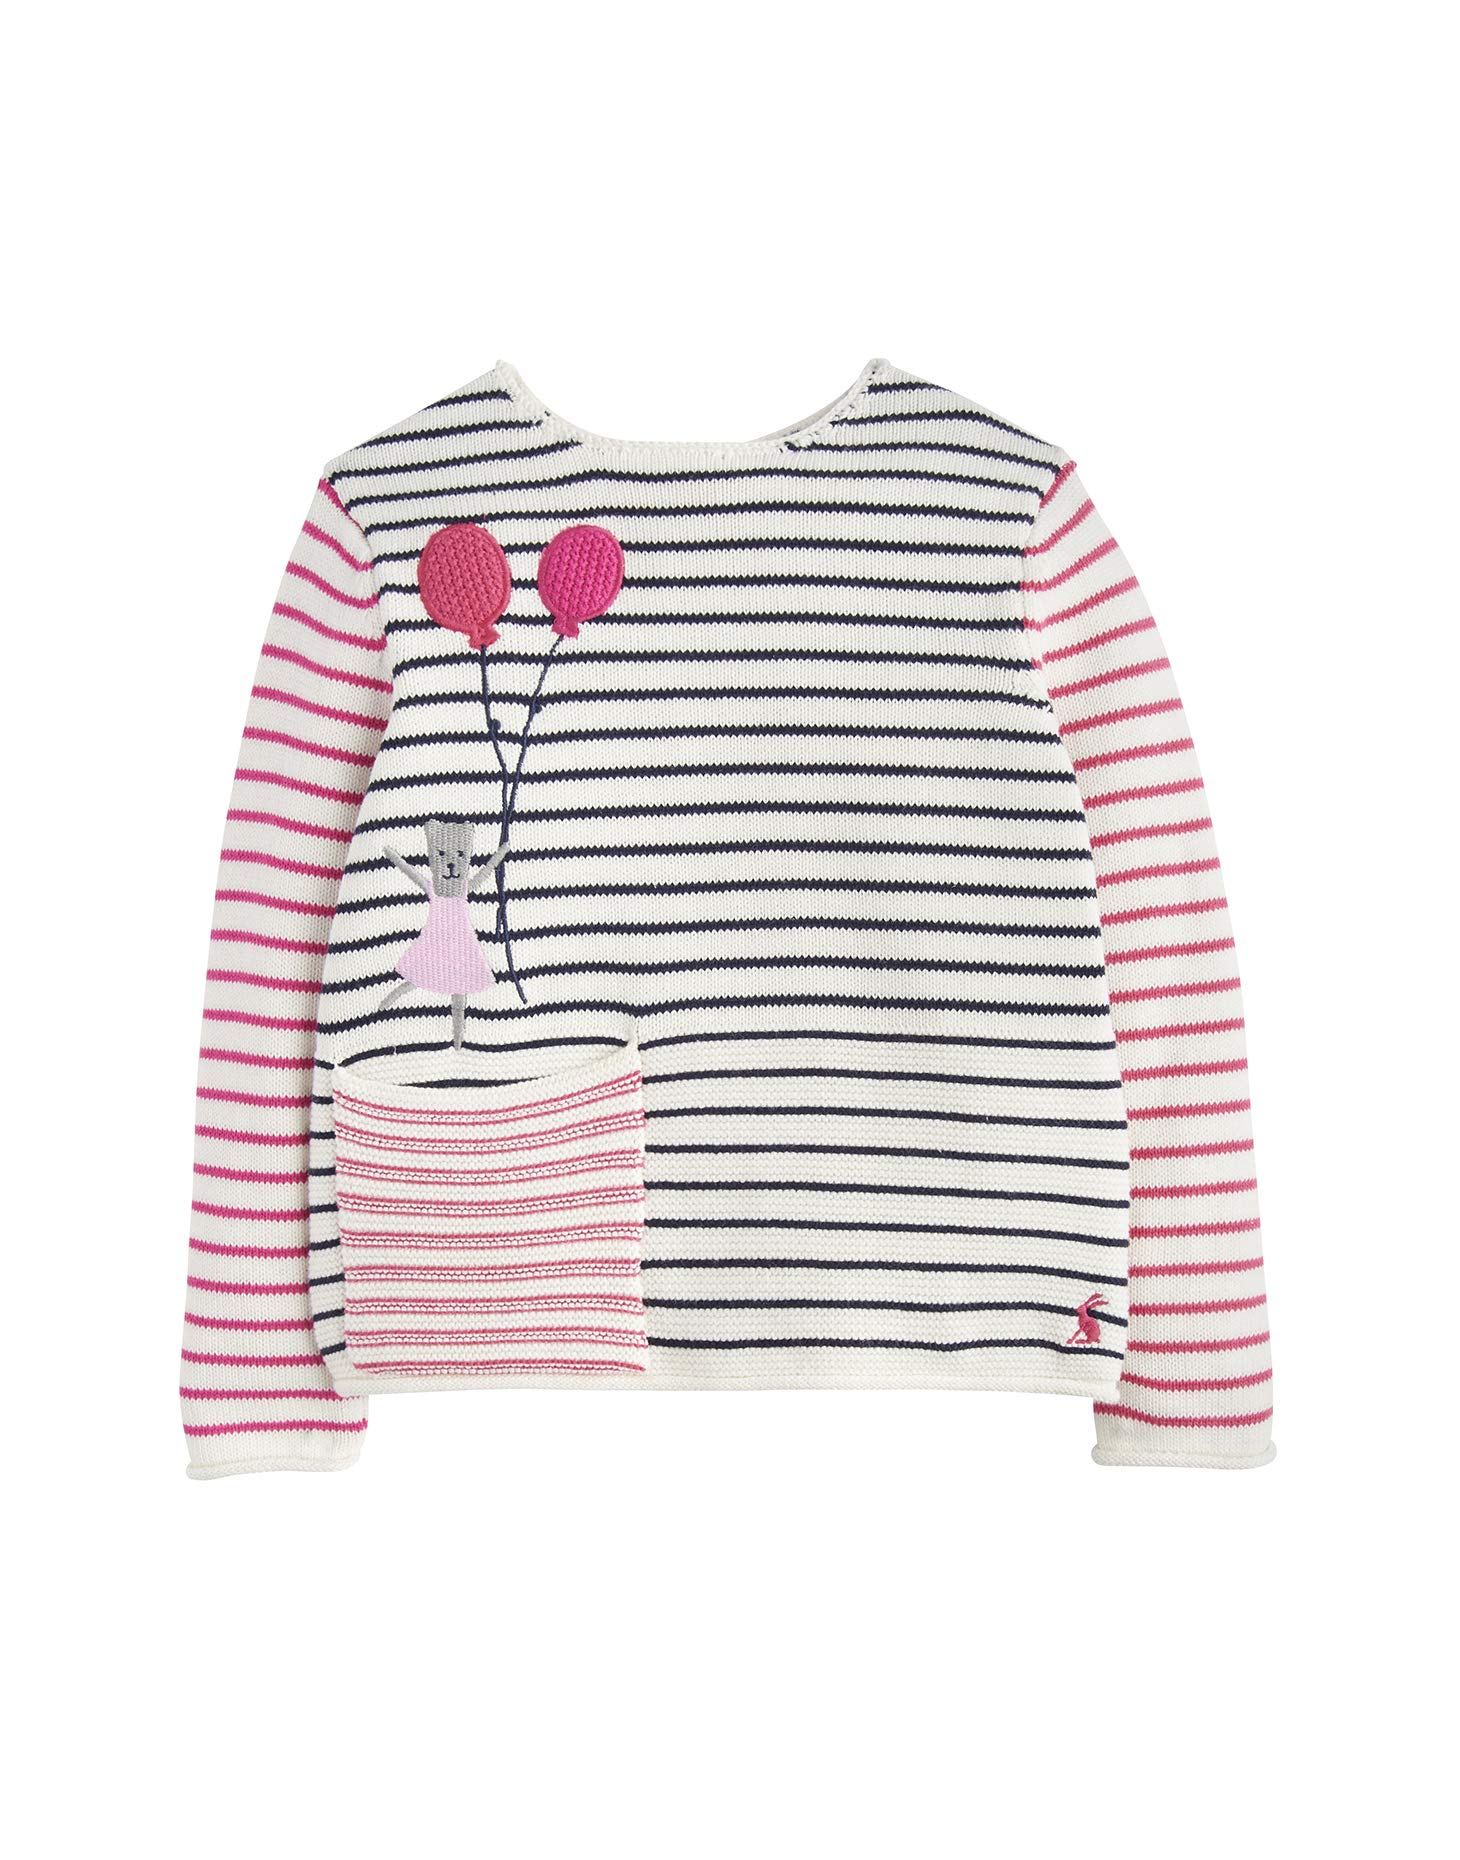 Joules Intarsia Jumper - Stripe Balloon Bear - 5 Years - 110 cm by Joules